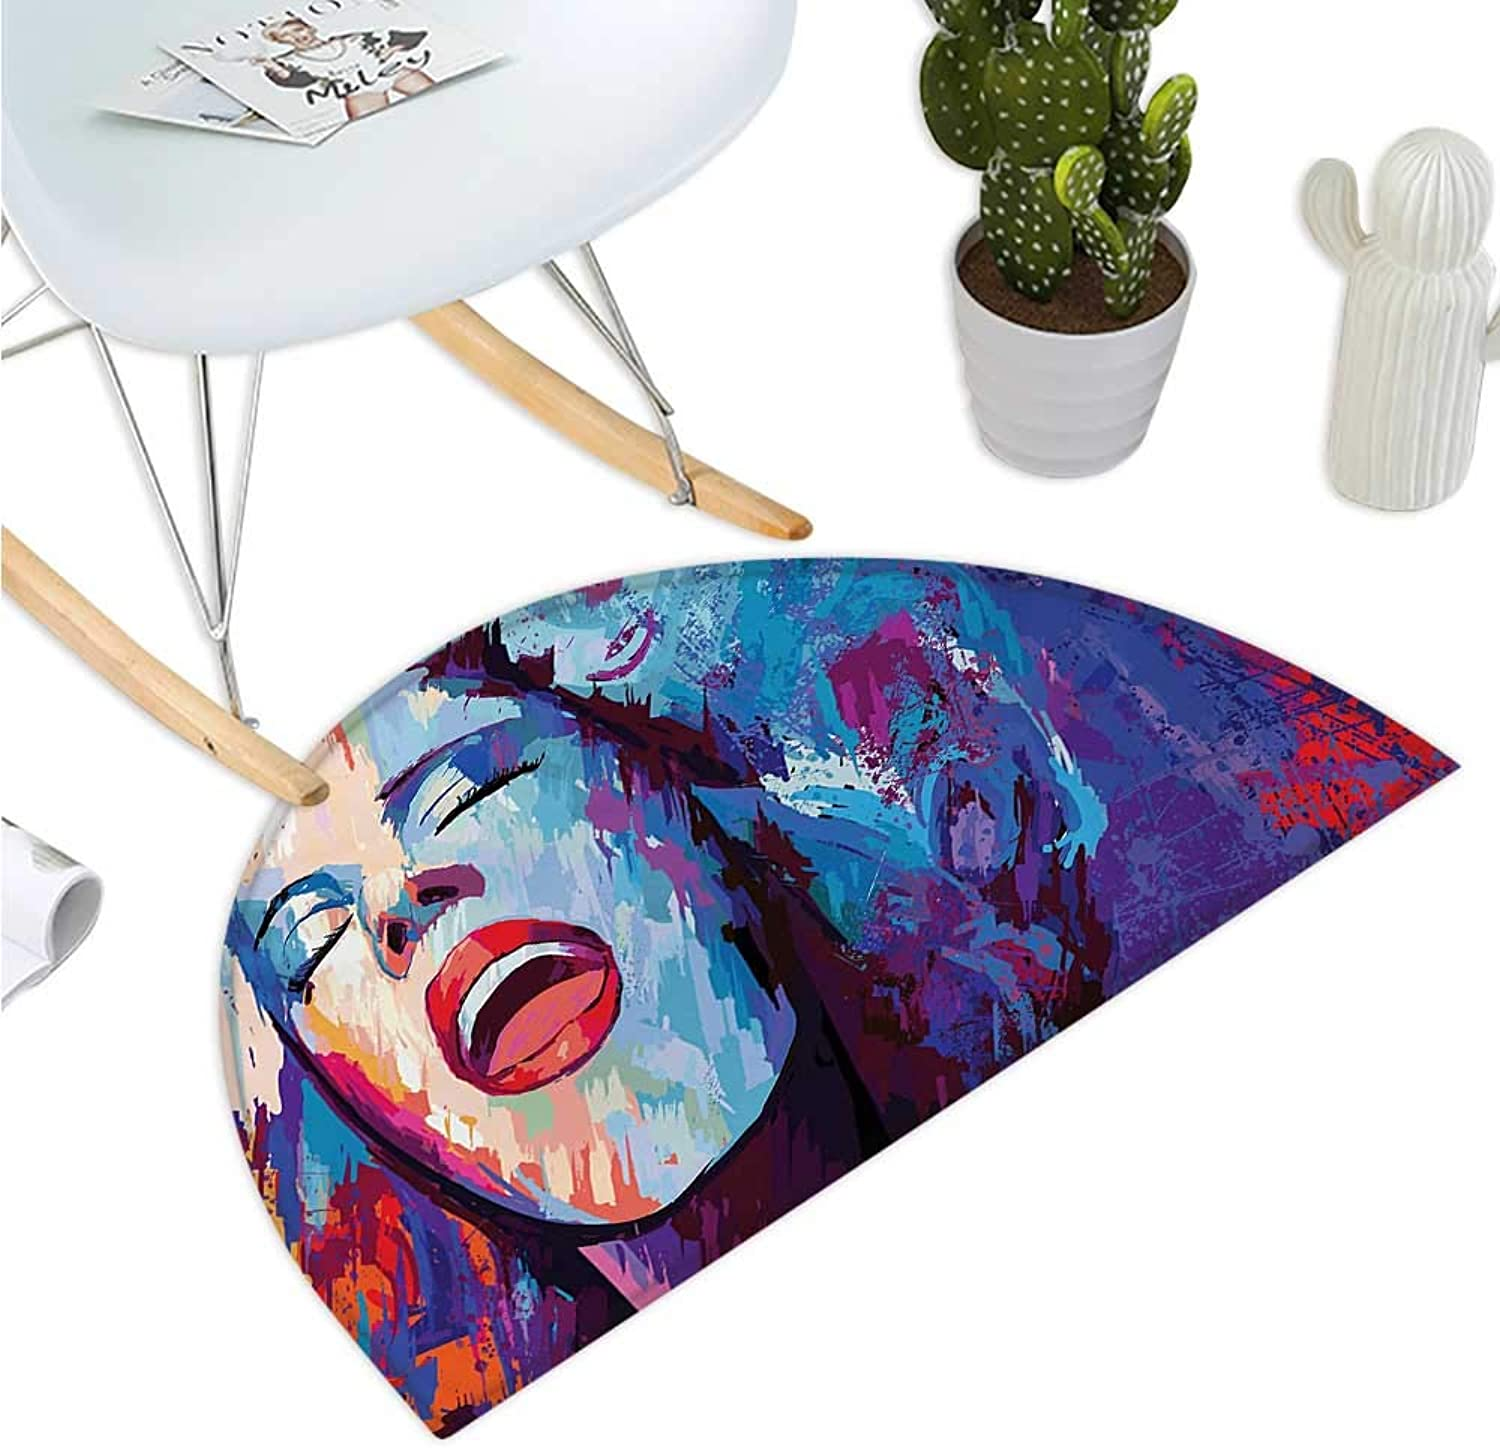 Jazz Music Semicircle Doormat Illustration of Singer on Grunge Background Performing Singing Woman Image Halfmoon doormats H 35.4  xD 53.1  bluee Purple Red